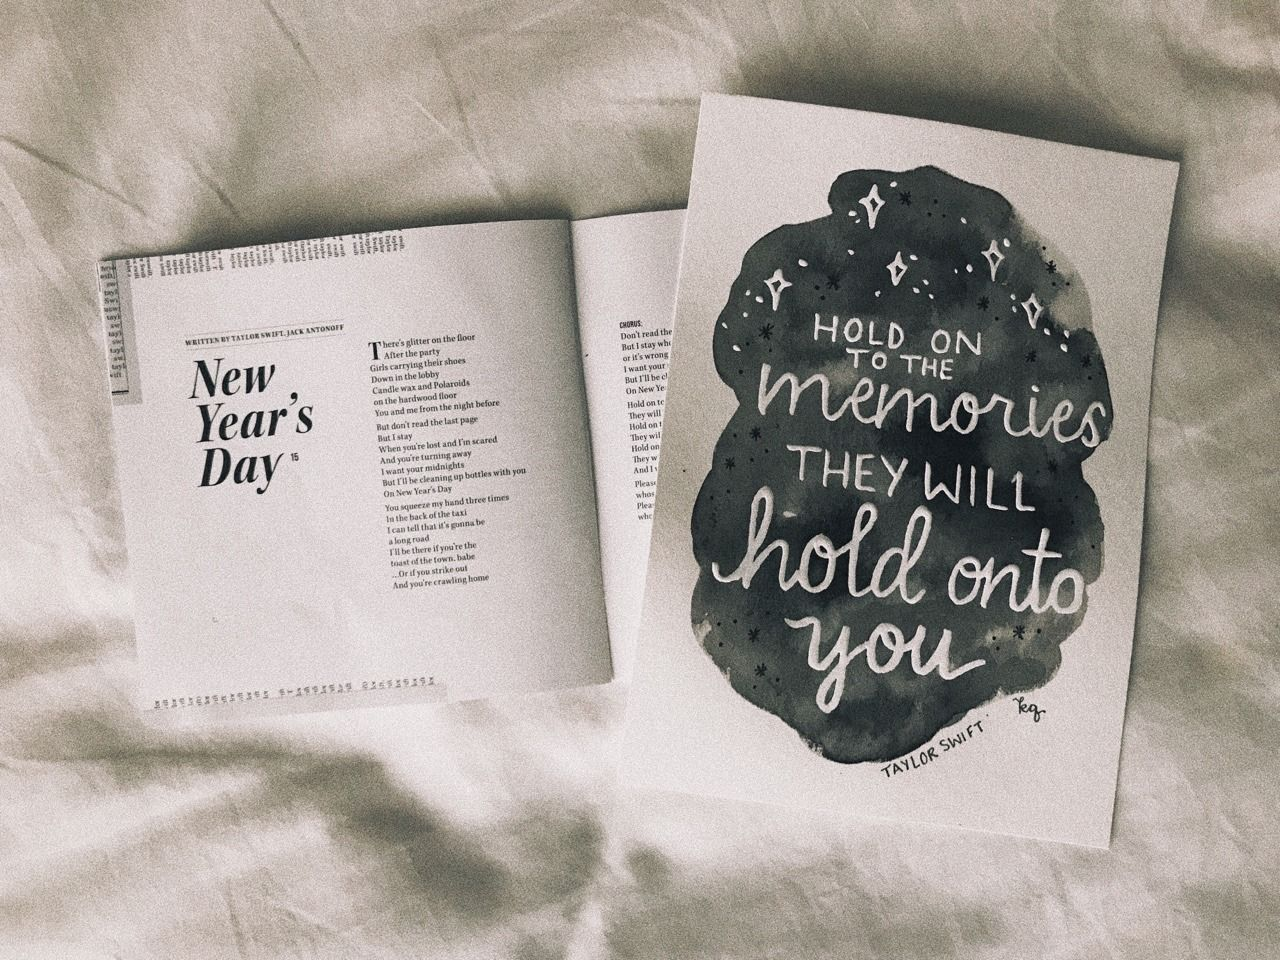 Taylor Swift New Year's Day Taylor swift quotes